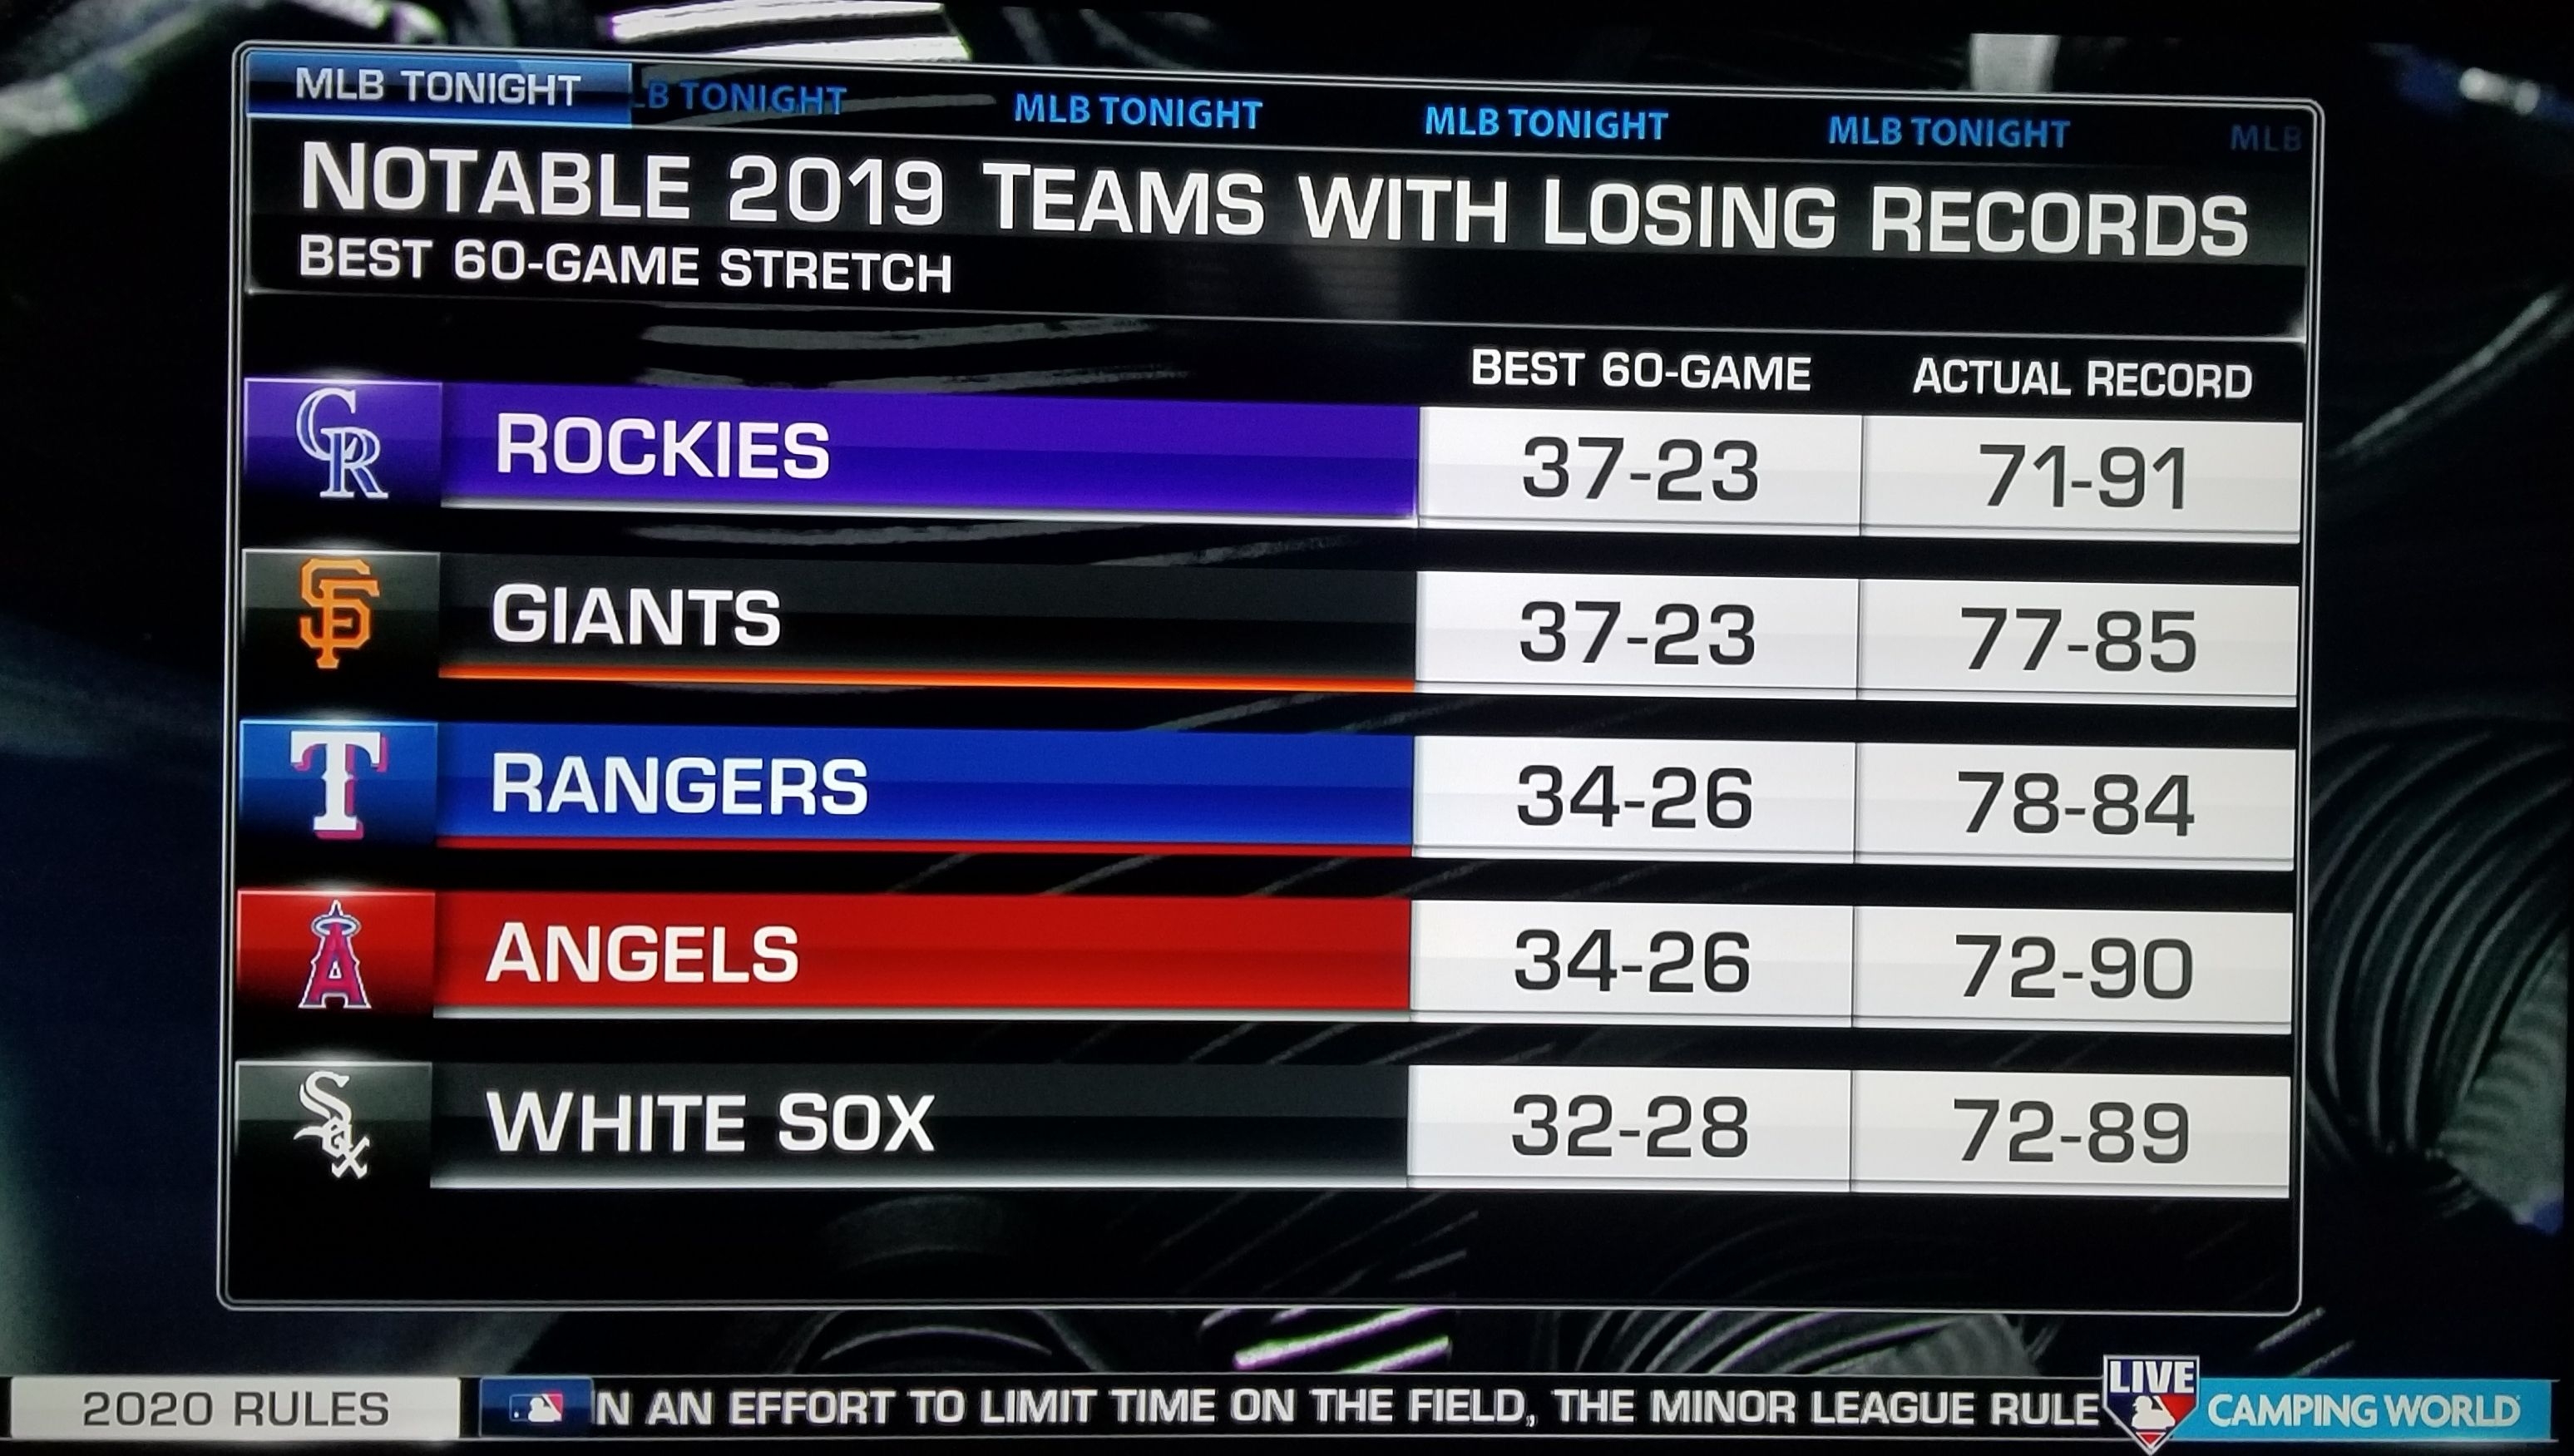 The Angels went 34-26 over a 60-game stretch in 2019